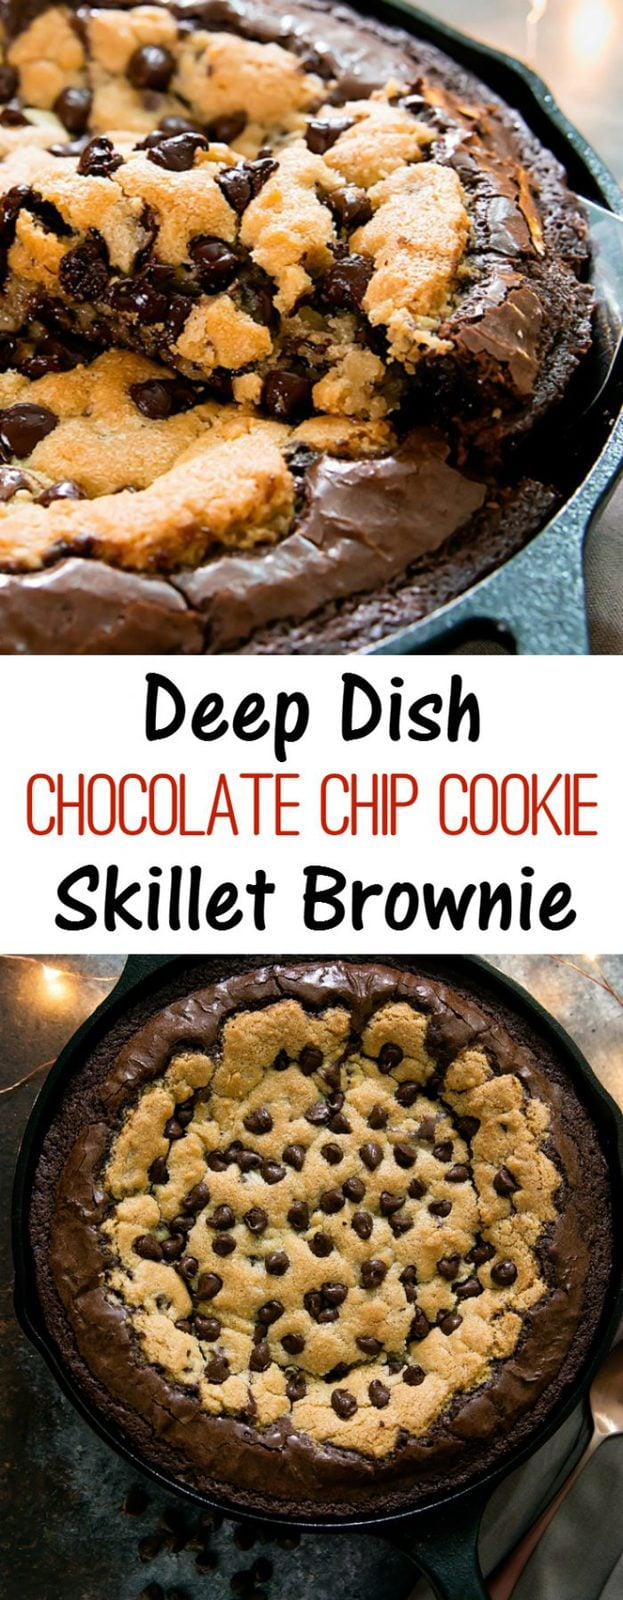 Deep Dish Chocolate Chip Cookie Skillet Brownie